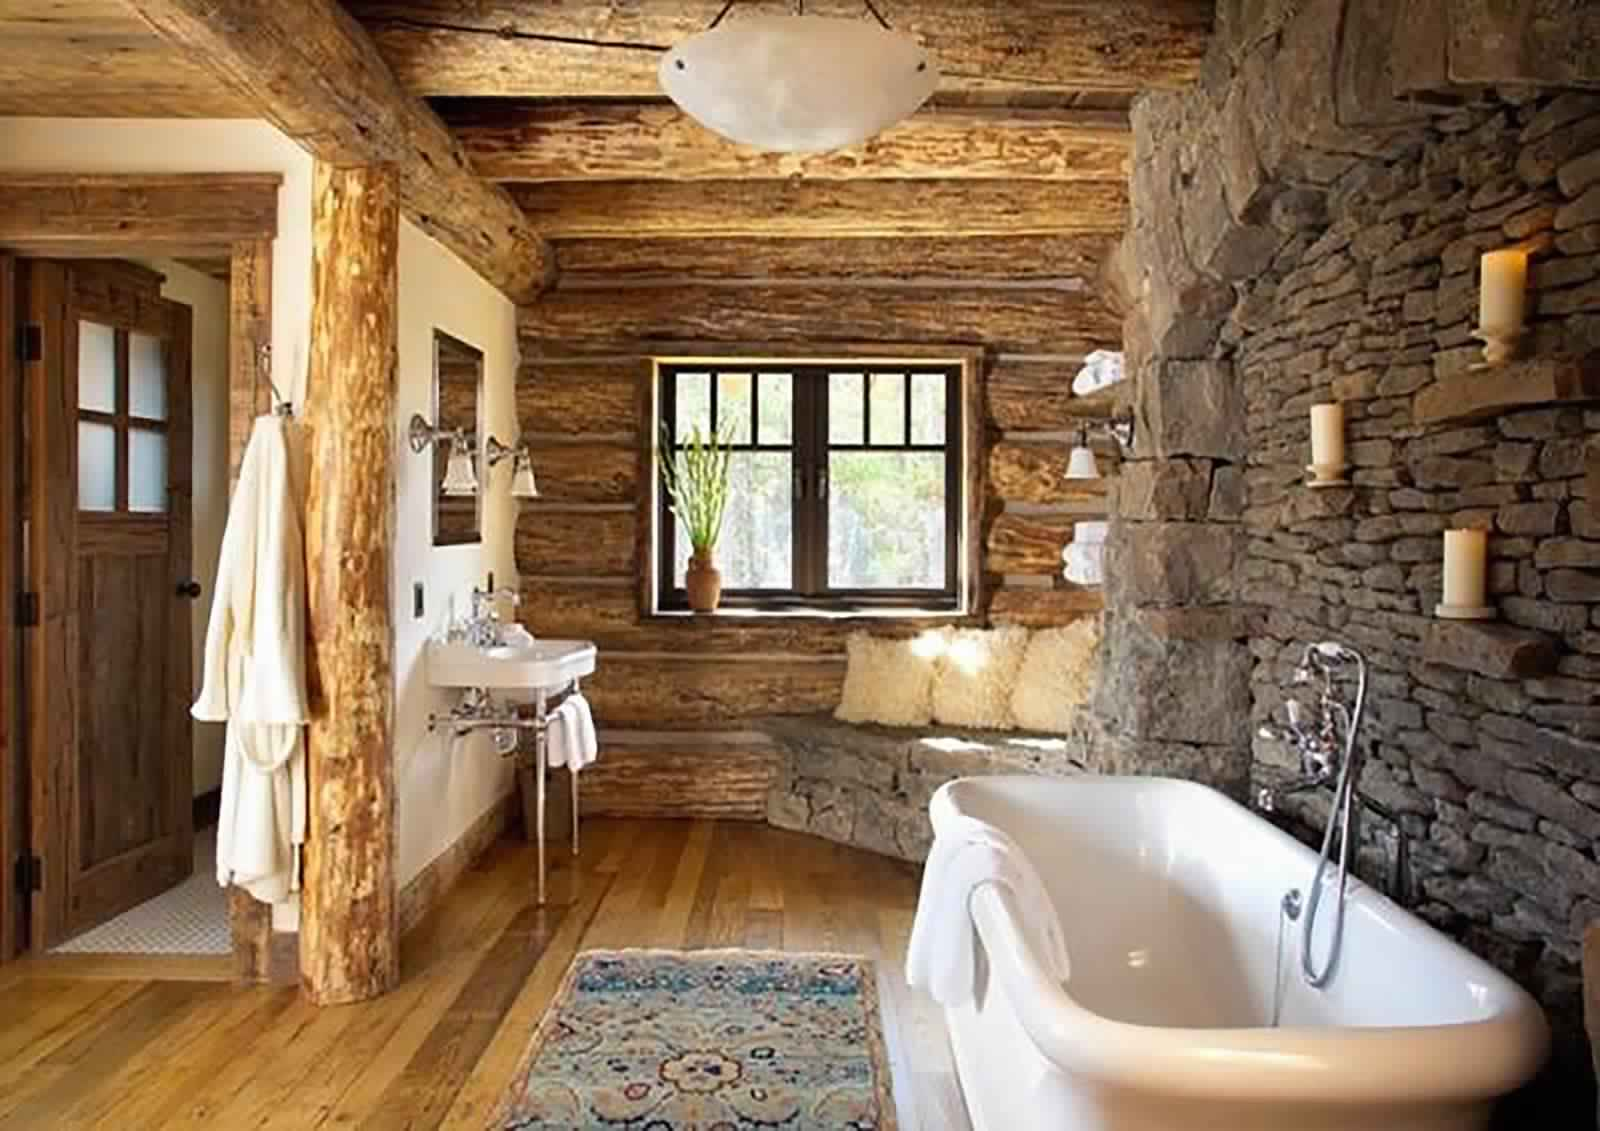 Rustic Bathroom Ideas-Country style bathroom